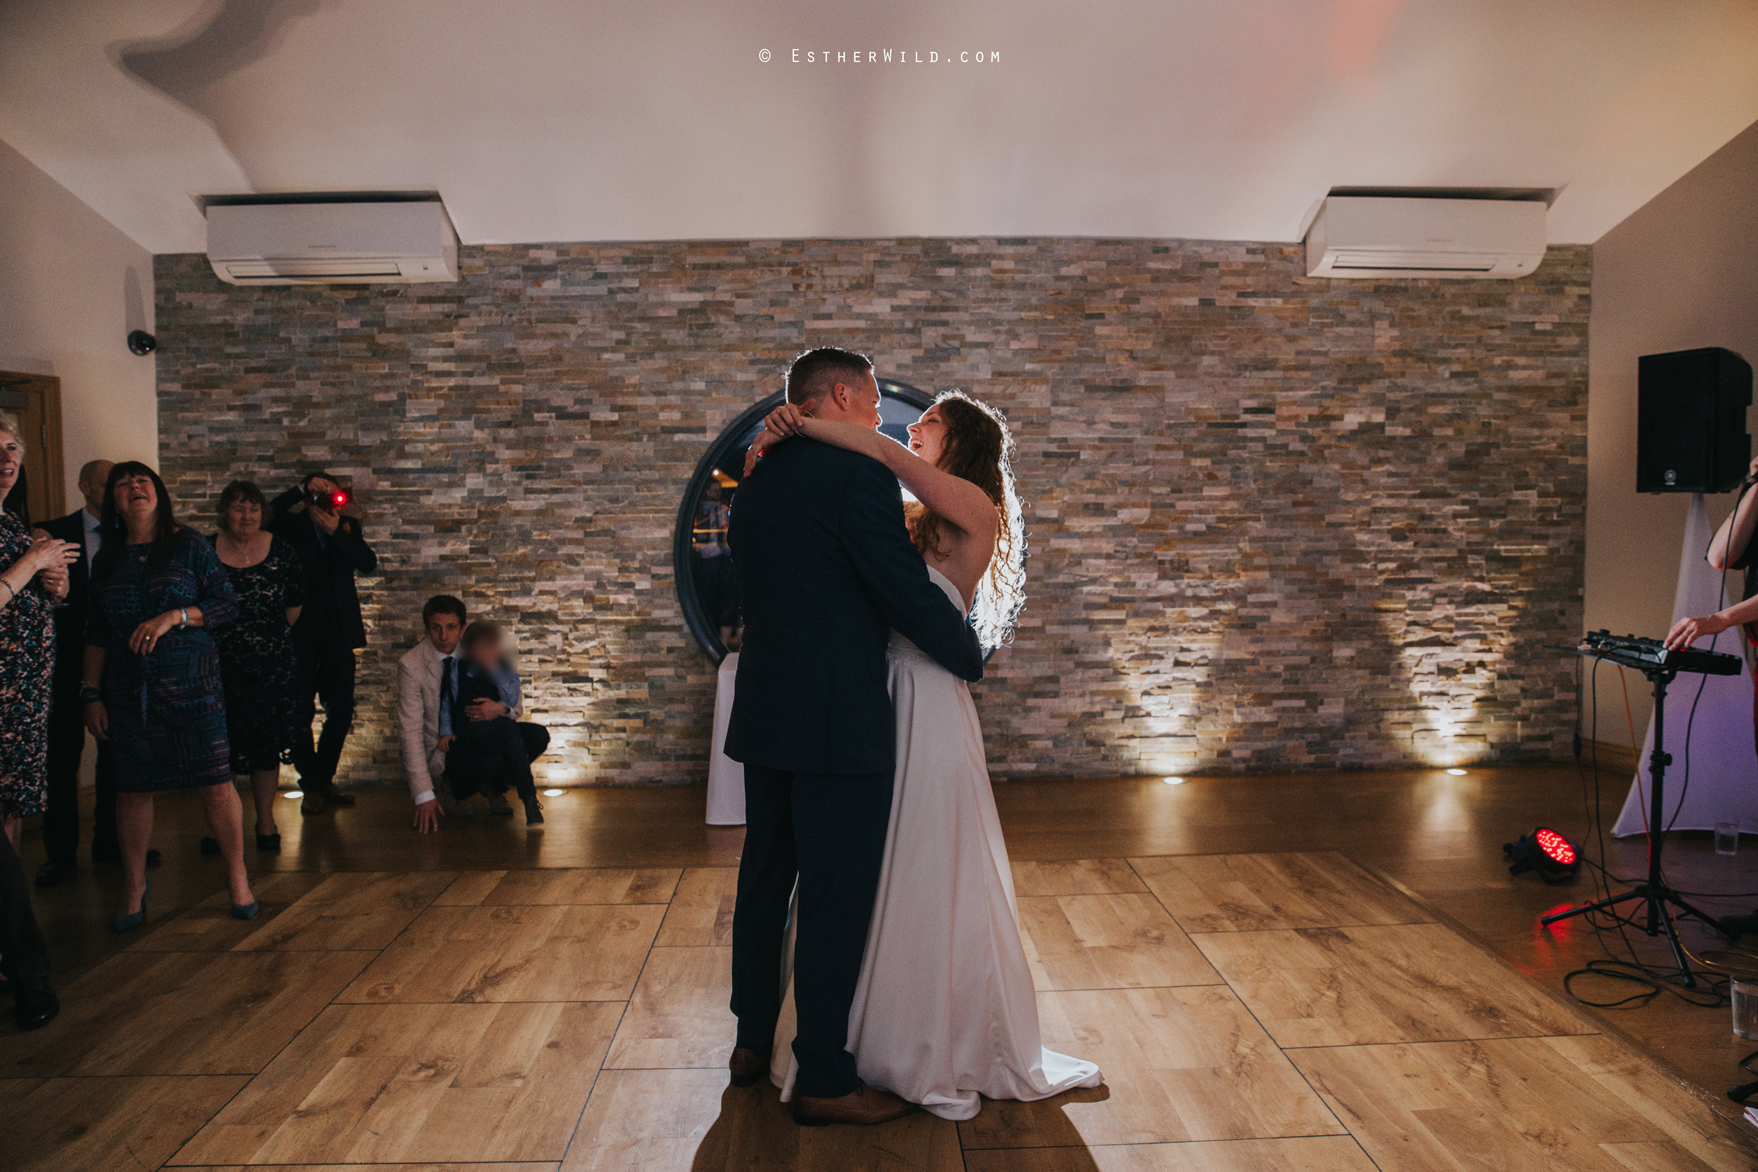 The_BoatHouse_Wedding_Venue_Ormesby_Norfolk_Broads_Boat_Wedding_Photography_Esther_Wild_Photographer_IMG_3554.jpg